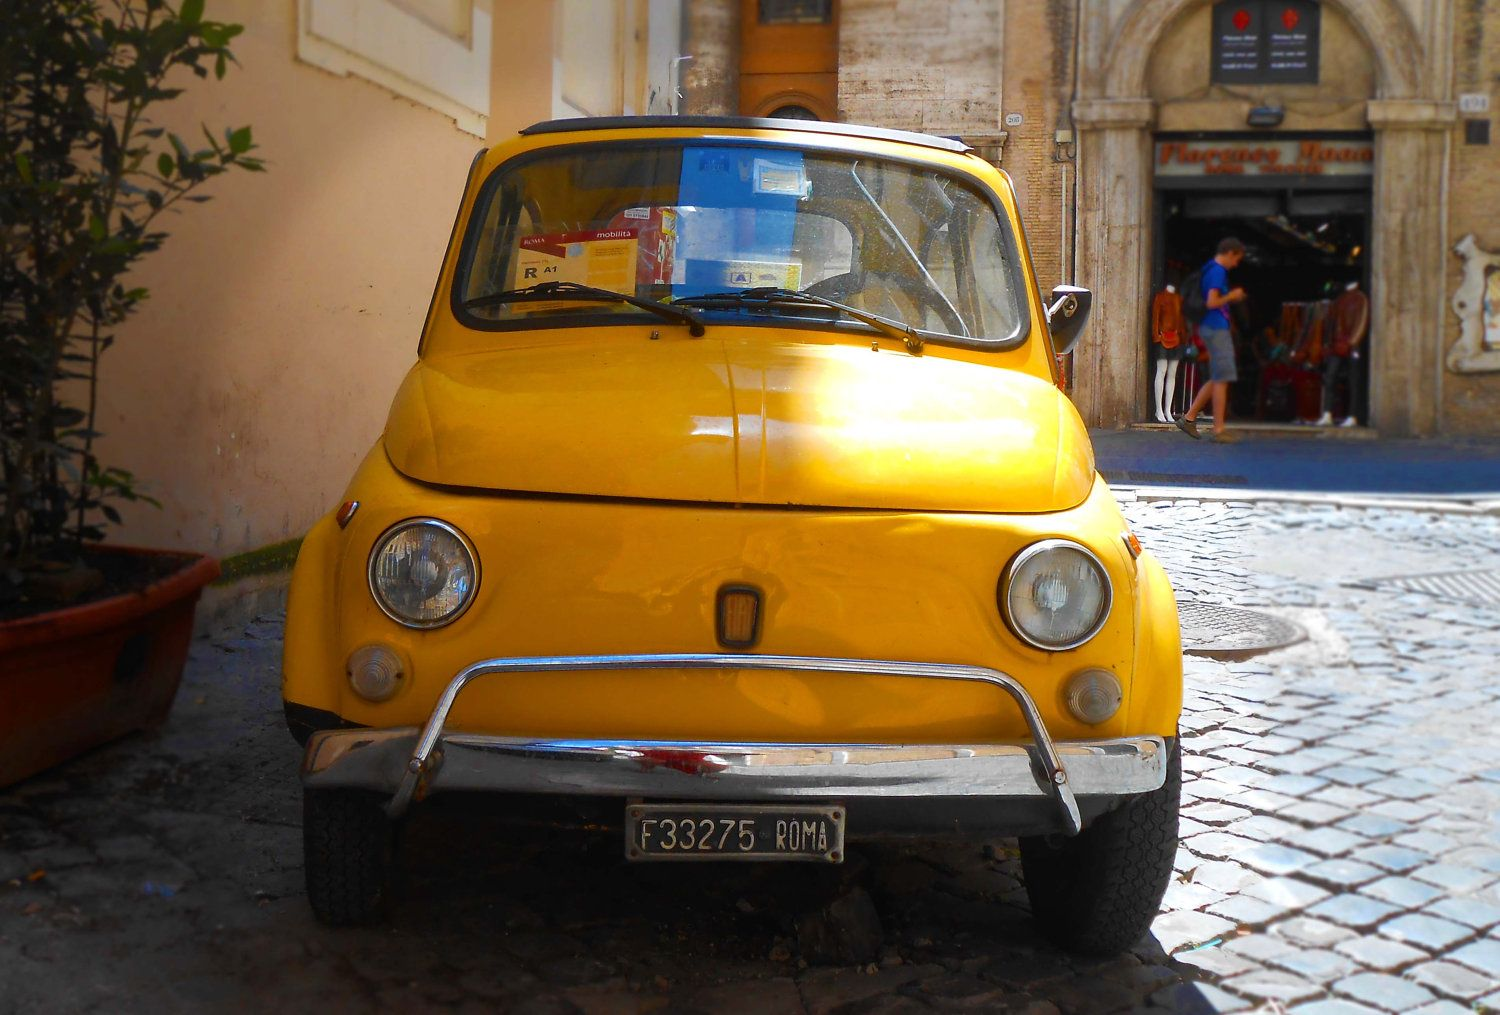 fiat 500 basket rack bing images fiat 500 pinterest fiat 500 fiat and image search